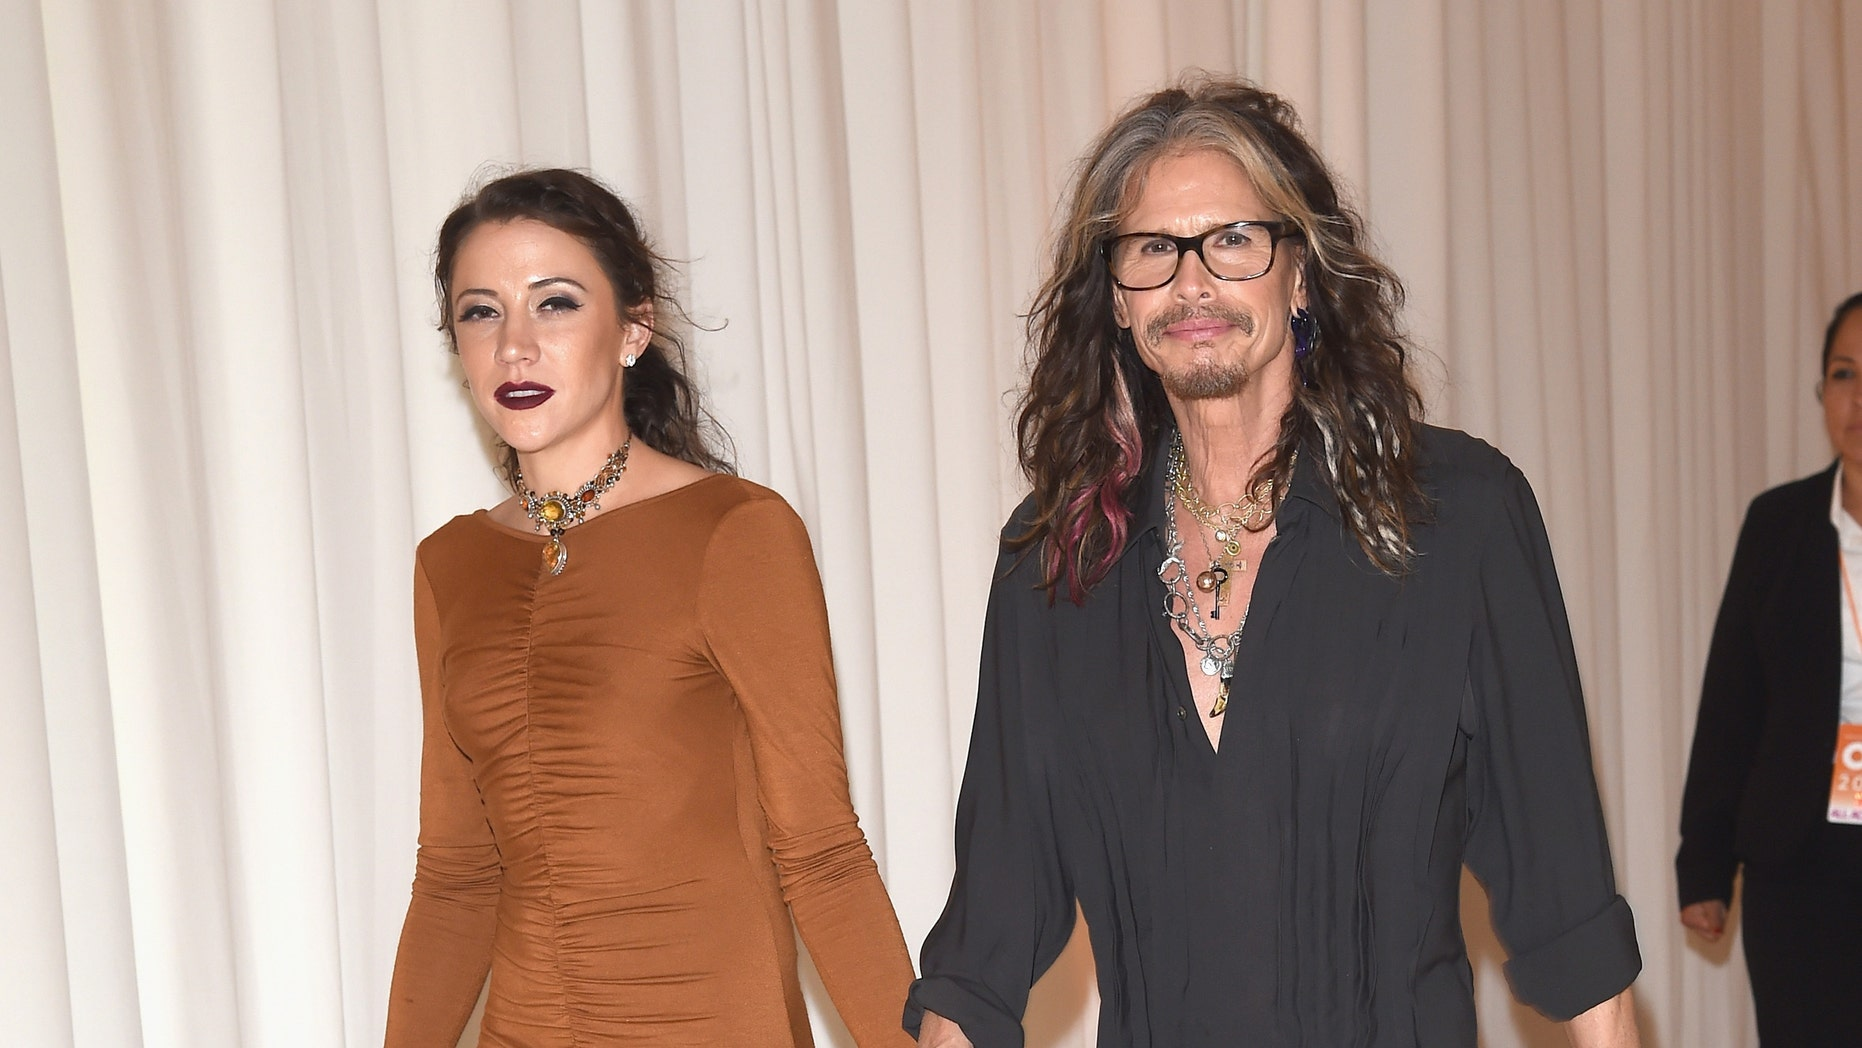 February 28, 2016. Singer Steven Tyler (R) and Aimee Ann Preston attend Bulgari at the 24th Annual Elton John AIDS Foundation's Oscar Viewing Party.